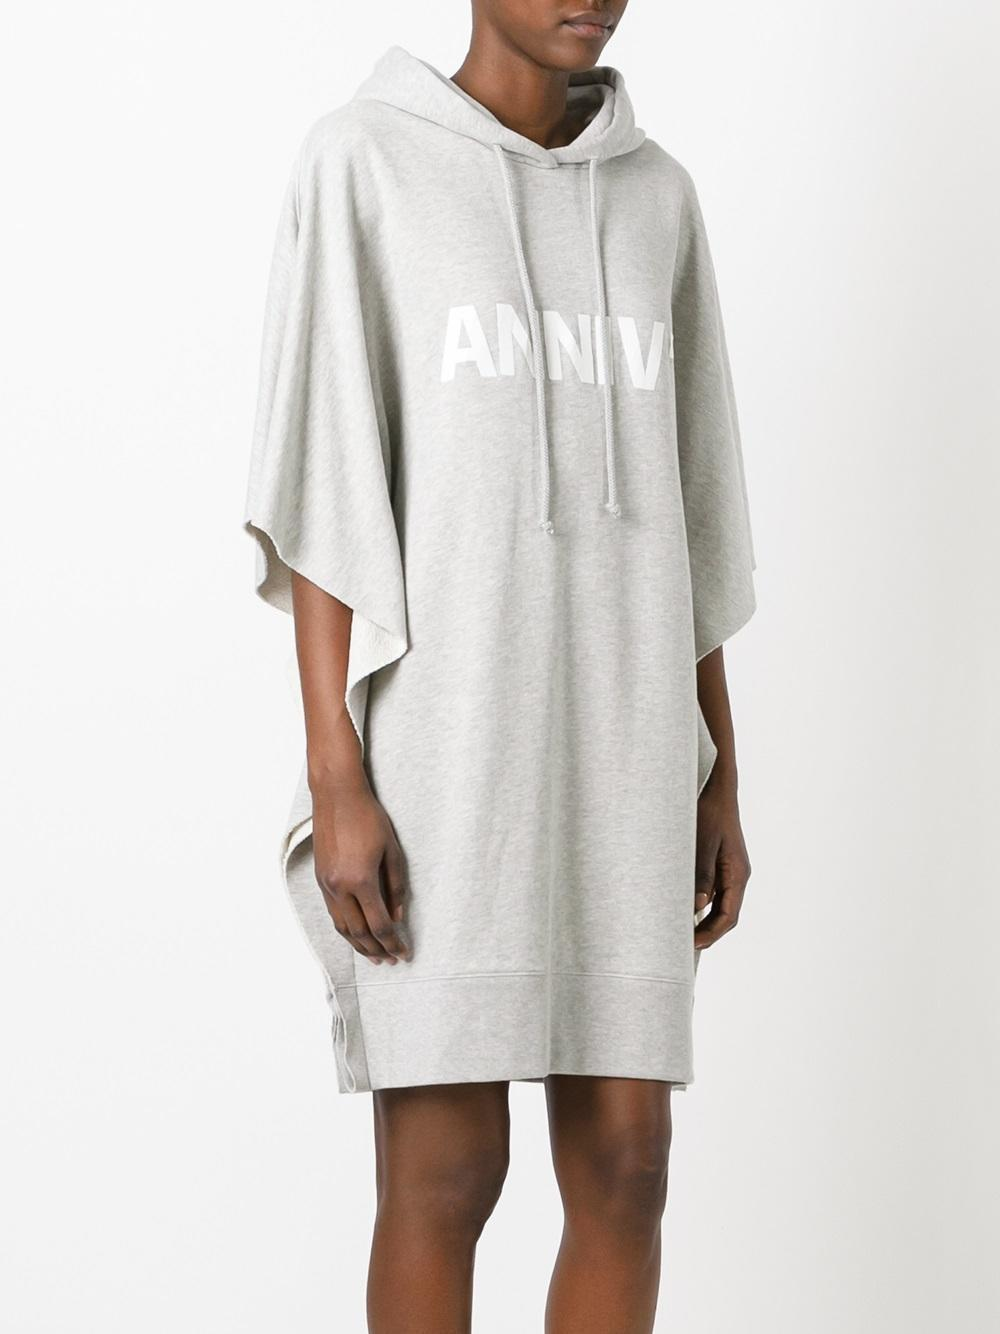 Lyst mm6 by maison martin margiela anniv oversized for Mm6 maison margiela